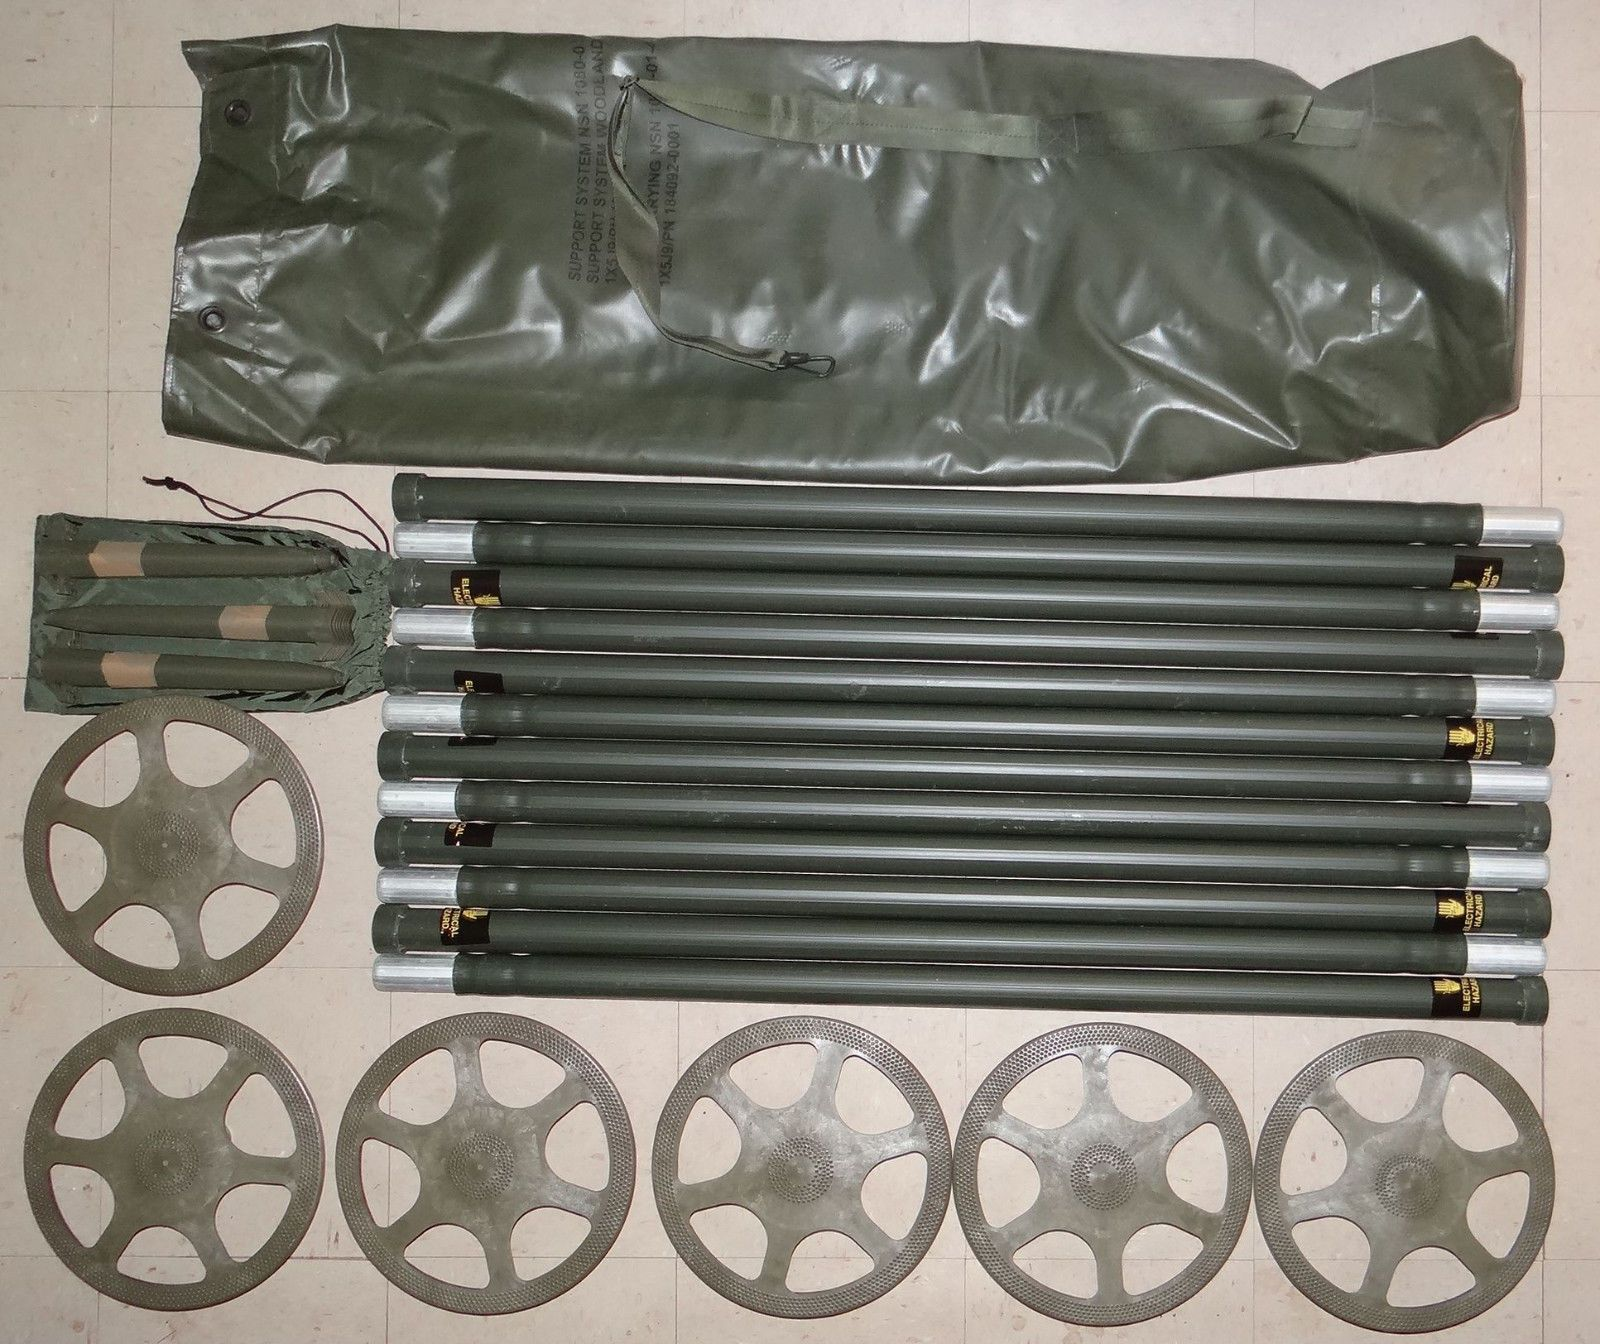 Ham Amateur Radio Antennas: New Camouflage Support Antenna Stacking System 12 Aluminum Poles Bag 24 Stakes -> BUY IT NOW ONLY: $118 on eBay!